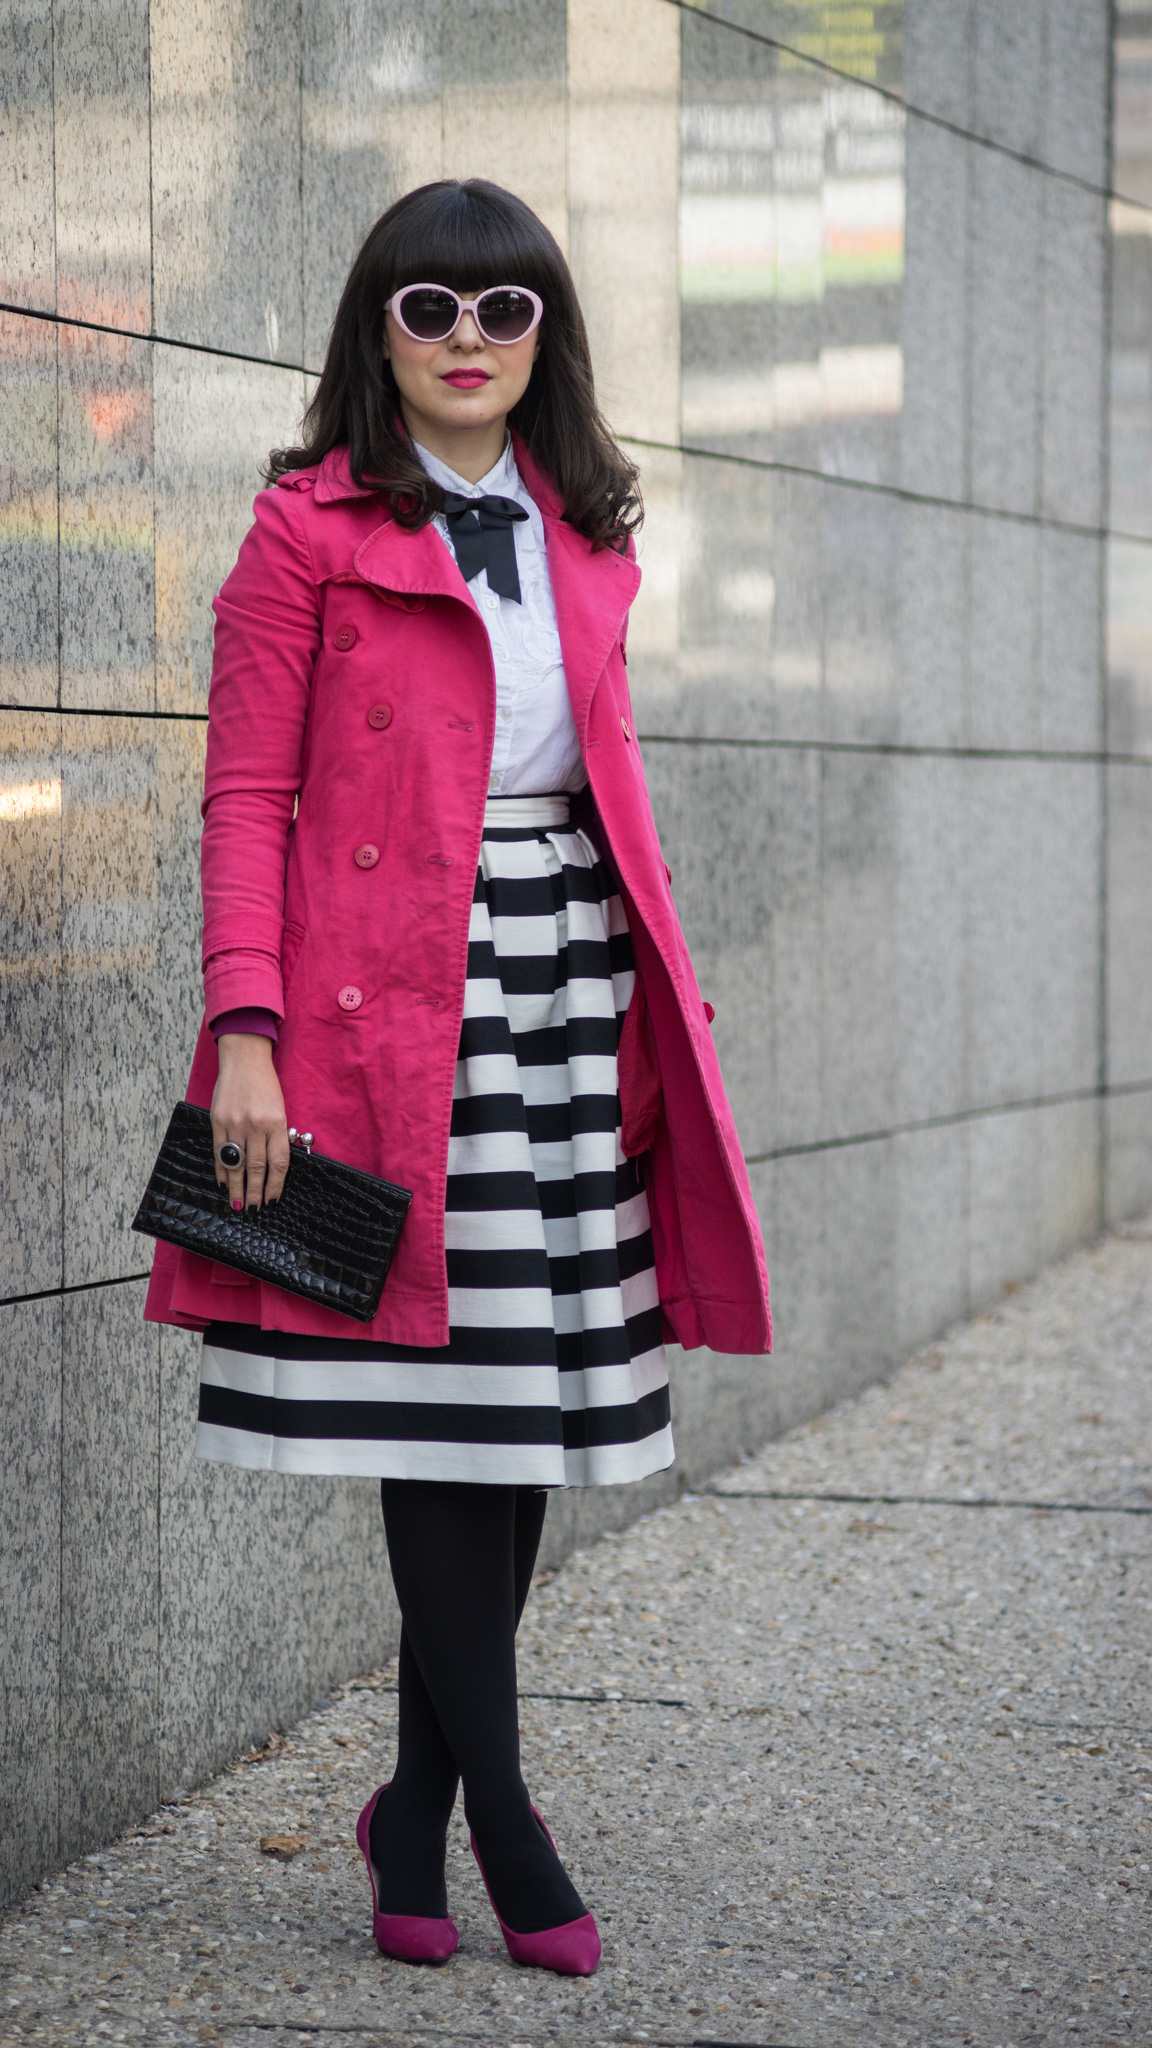 786d55fd72 black   white outfit with stripes and pops of pink and fuchsia white shirt  black bow